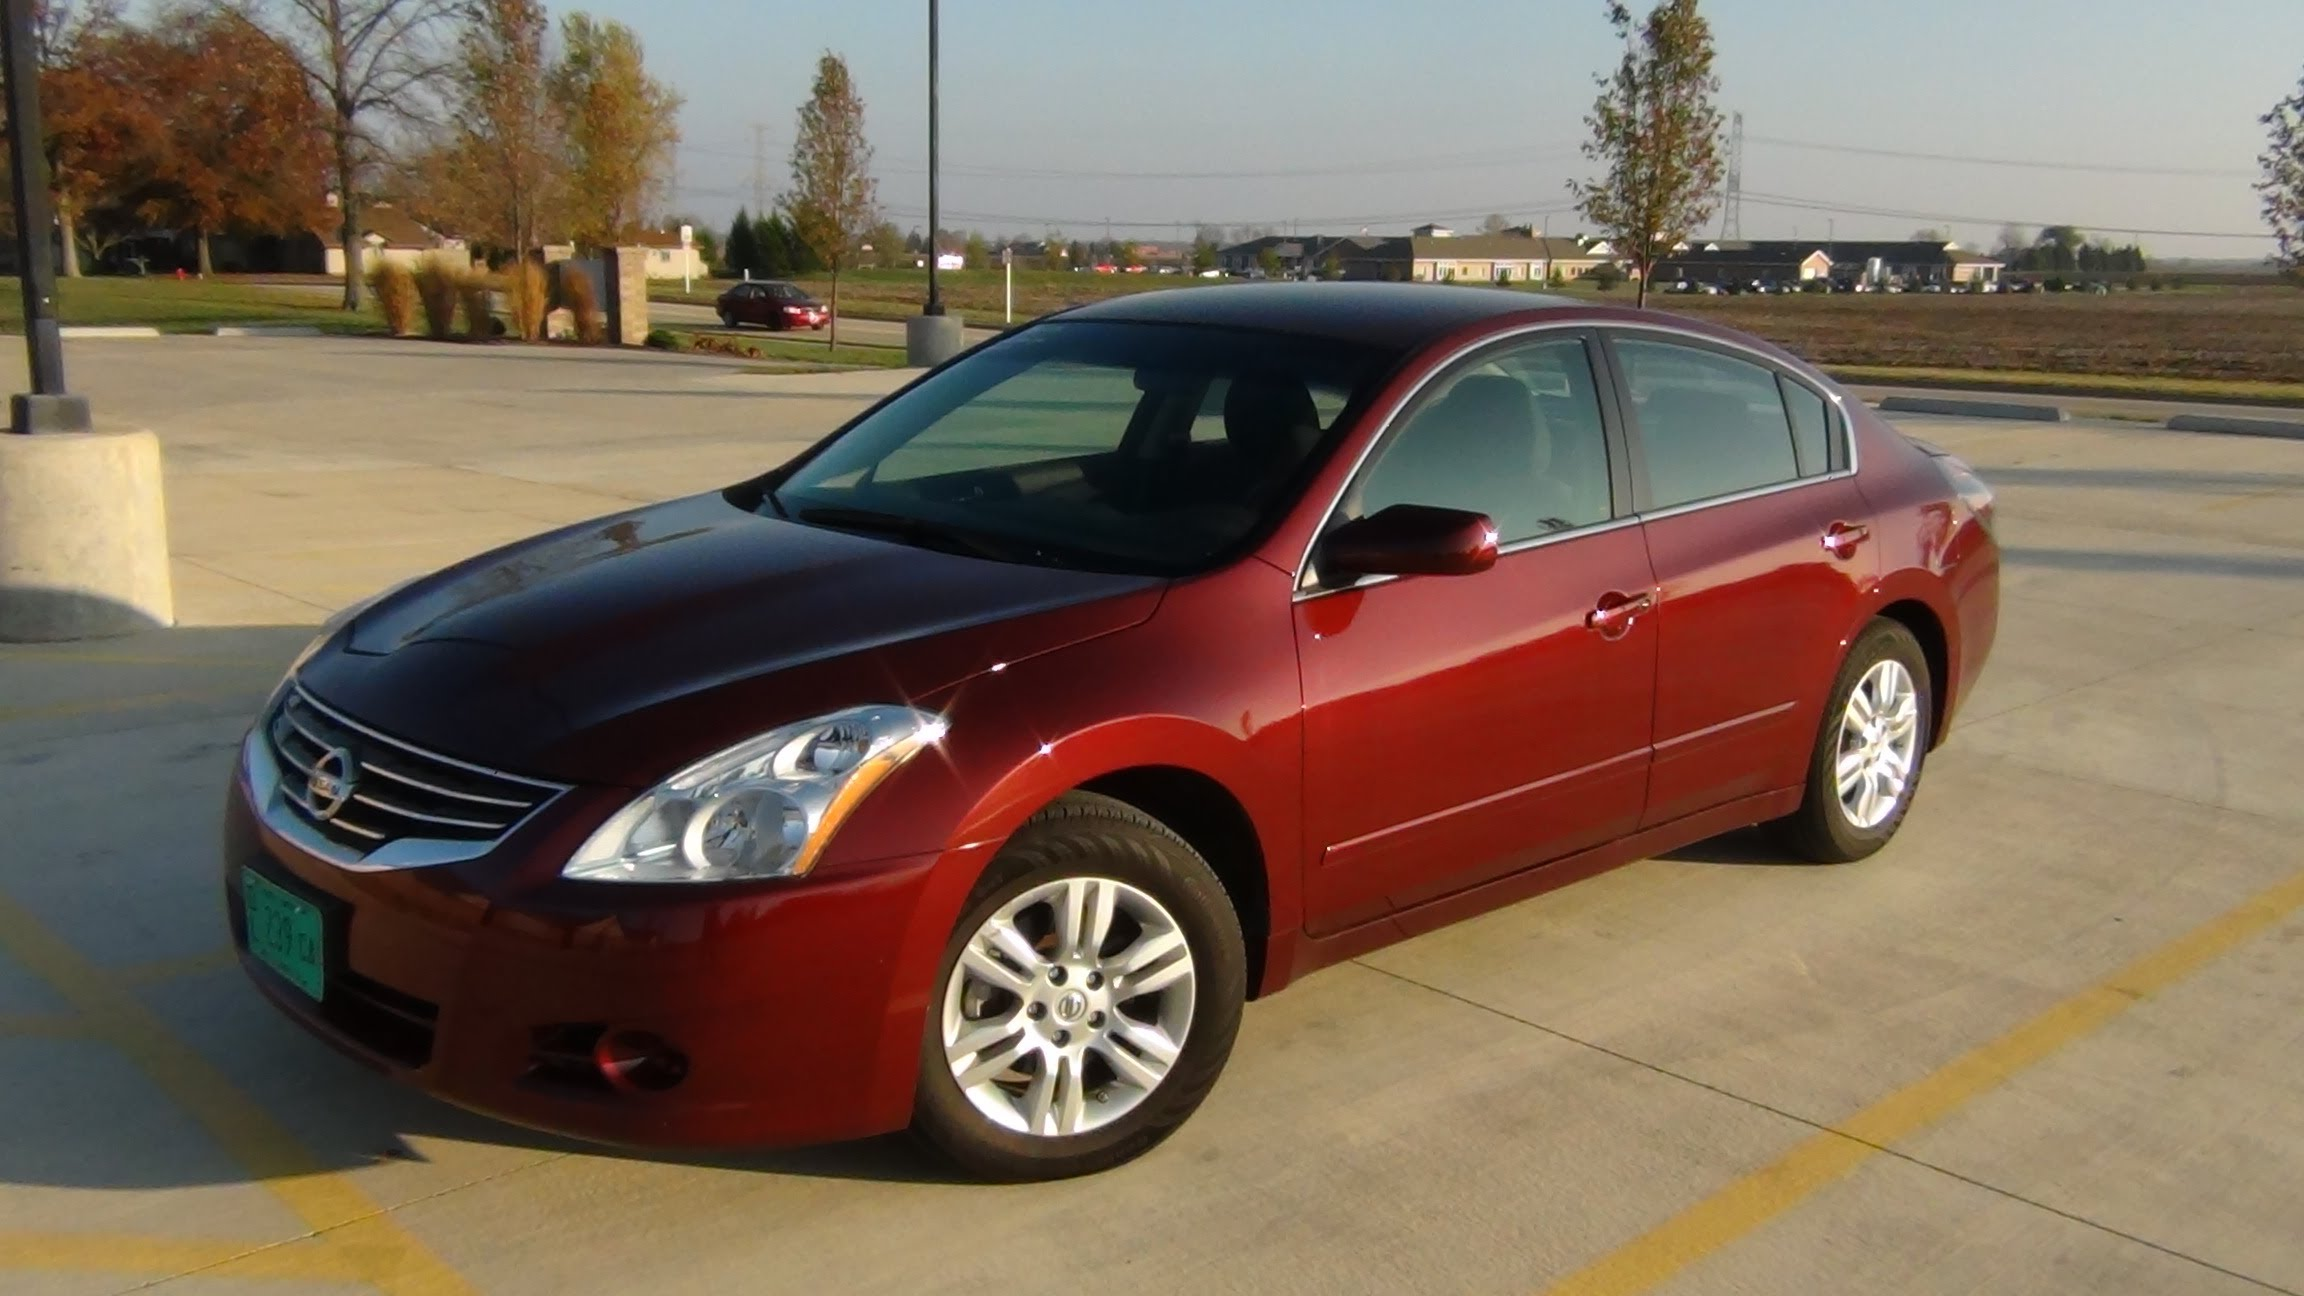 2012-nissan-altima-red | Used Car and Auto Parts Sale in Syracuse and Central New York